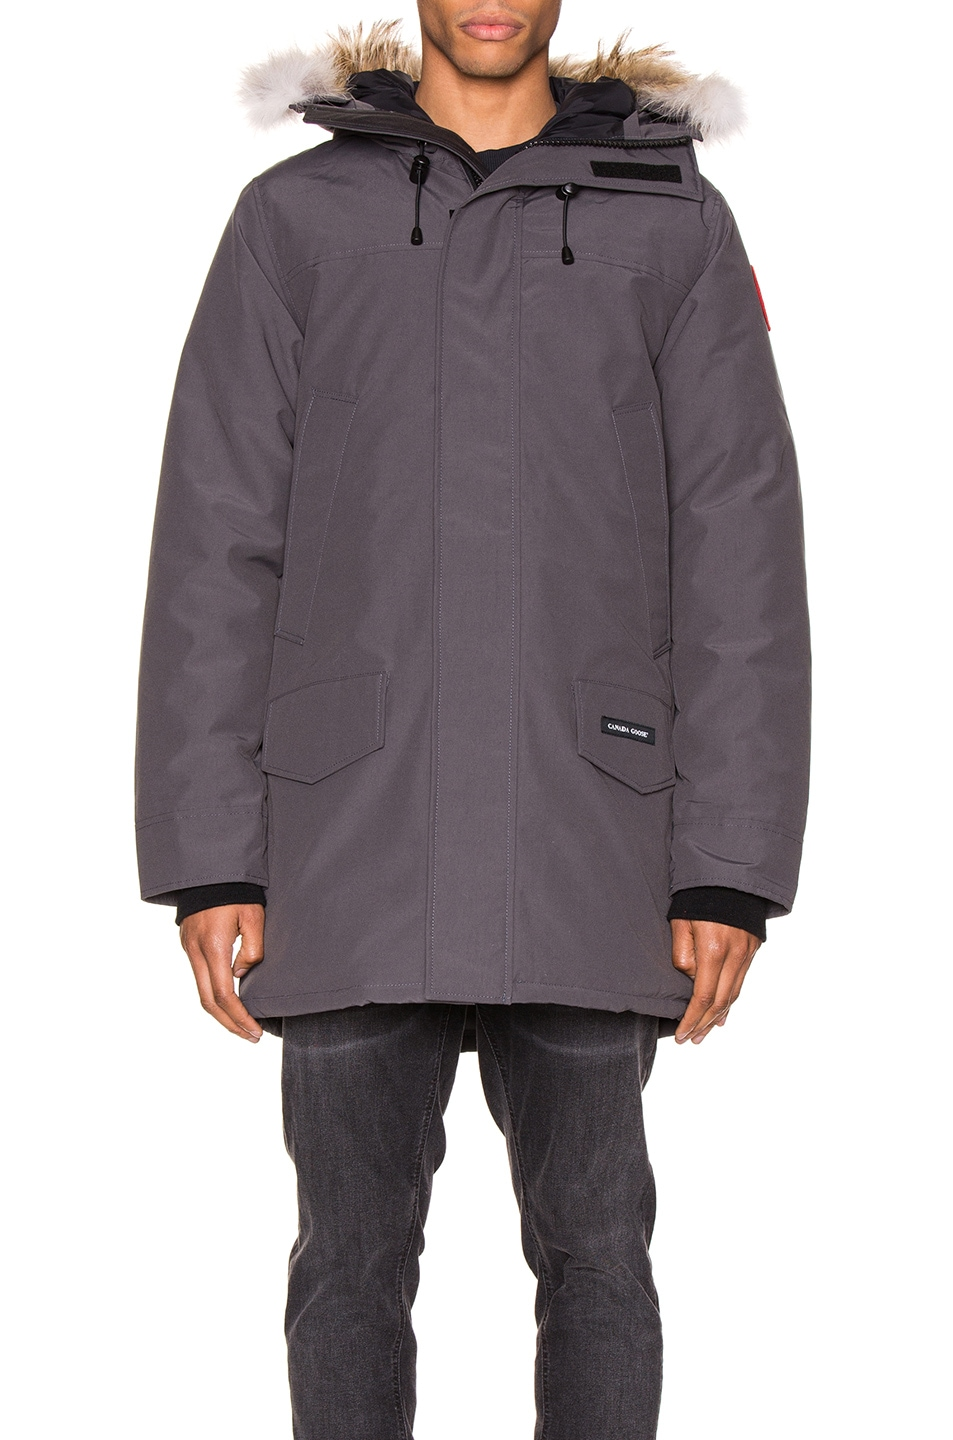 Image 2 of Canada Goose Langford Jacket in Graphite